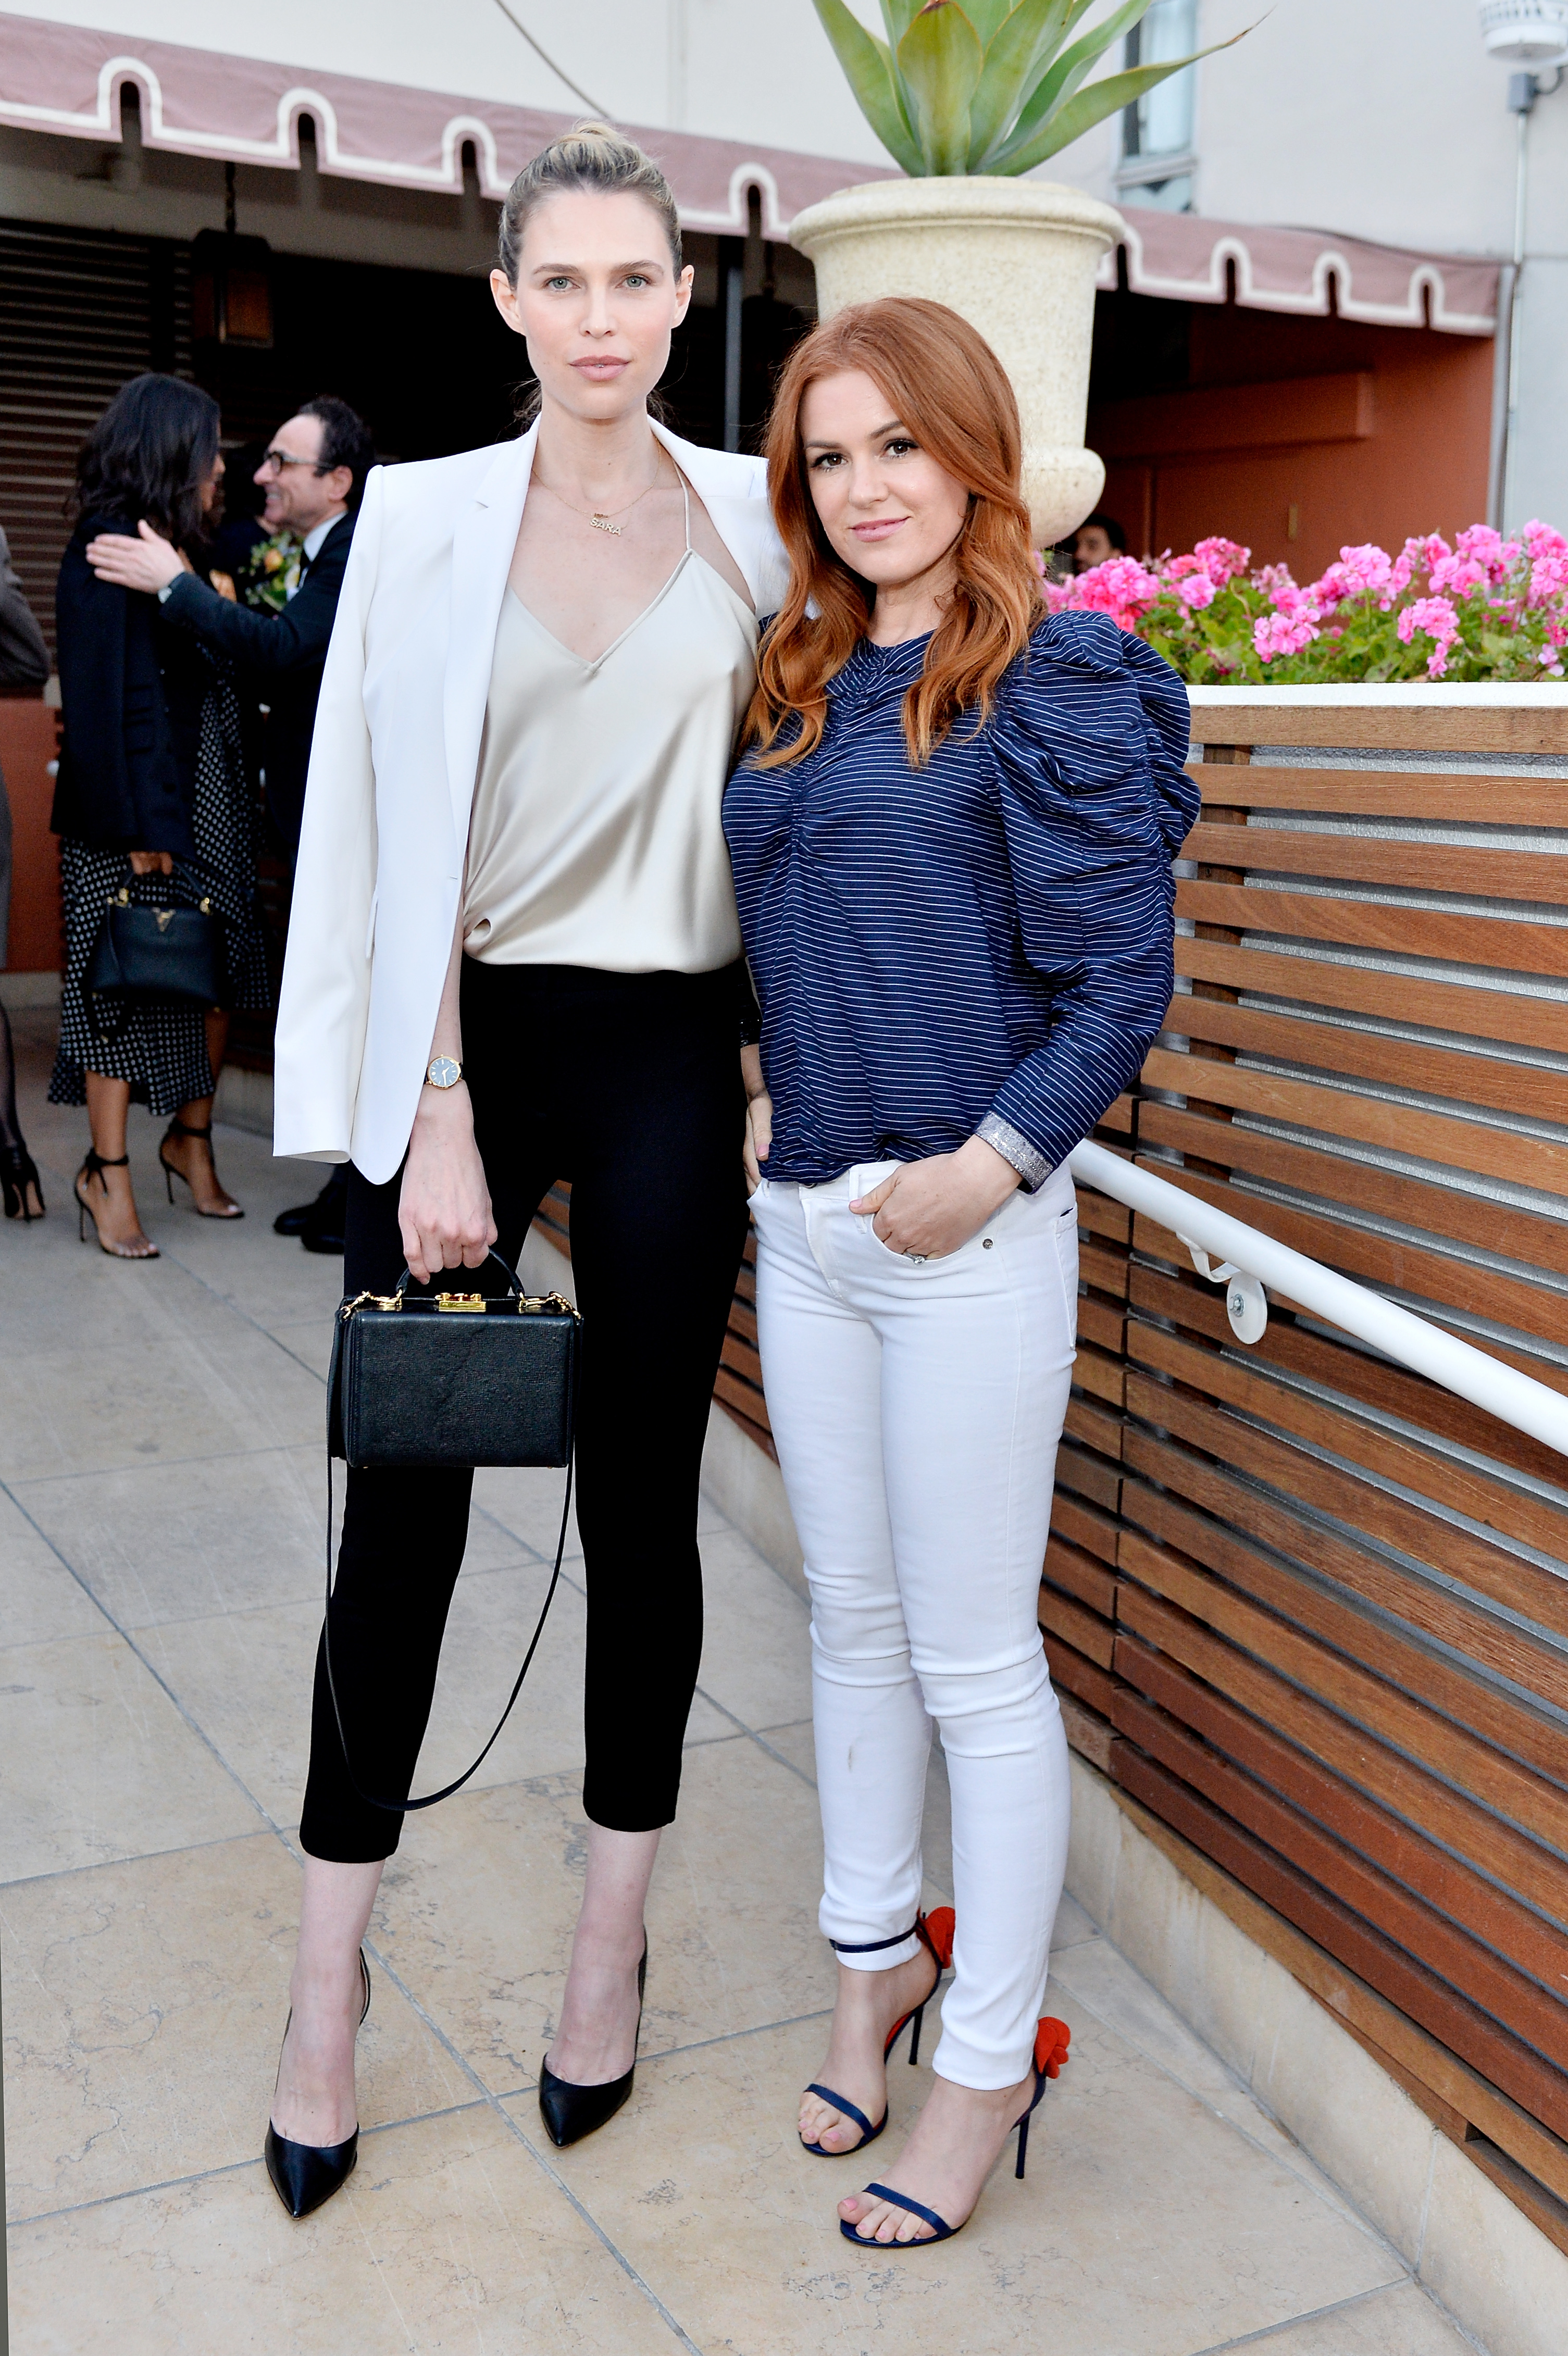 Sara Foster and Isla Fisher attend Aerin Lauder Dinner in Celebration of the AERIN SS18 Collection by Williams Sonoma at Sunset Tower Hotel on May 9, 2018 in West Hollywood, California. (Photo by Stefanie Keenan/Getty Images for AERIN)